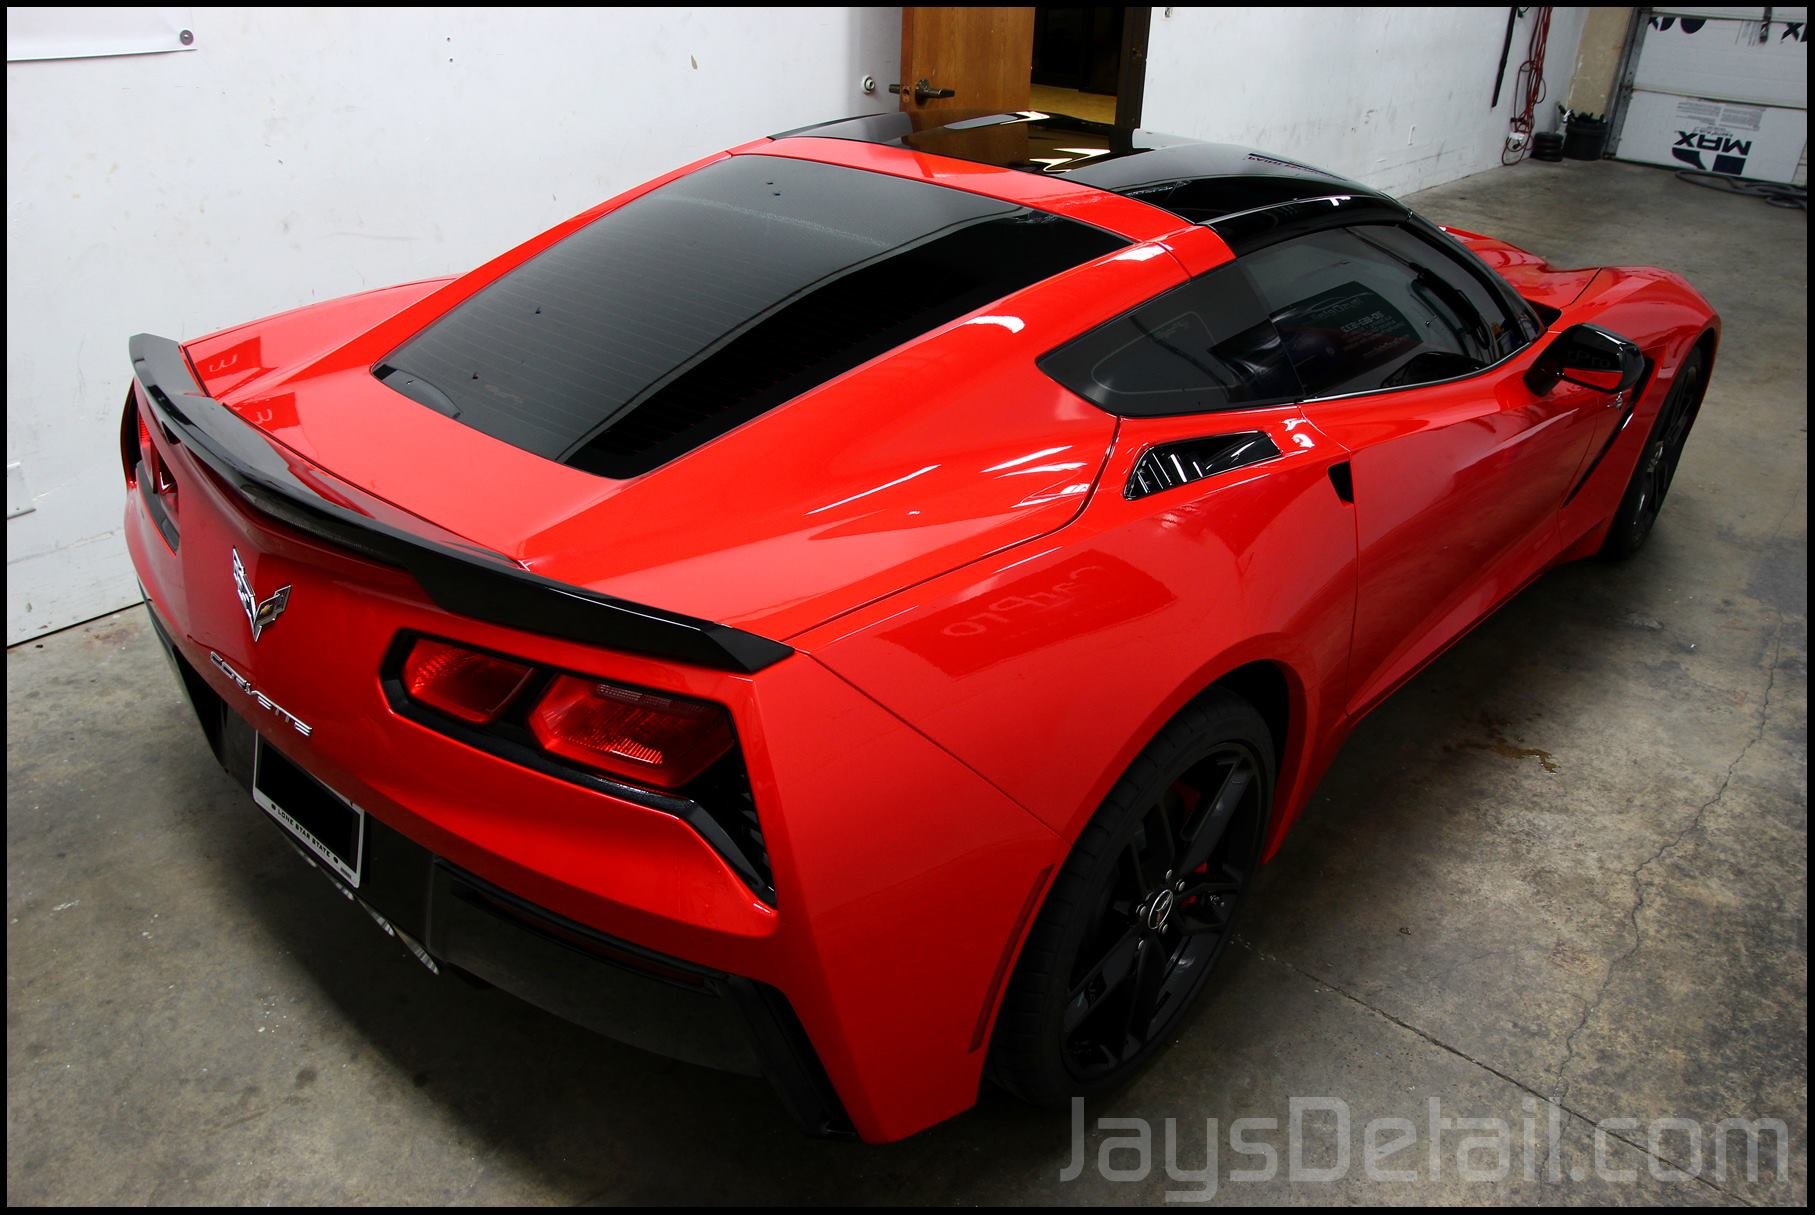 Cquartz Finest applied to my torch red C7